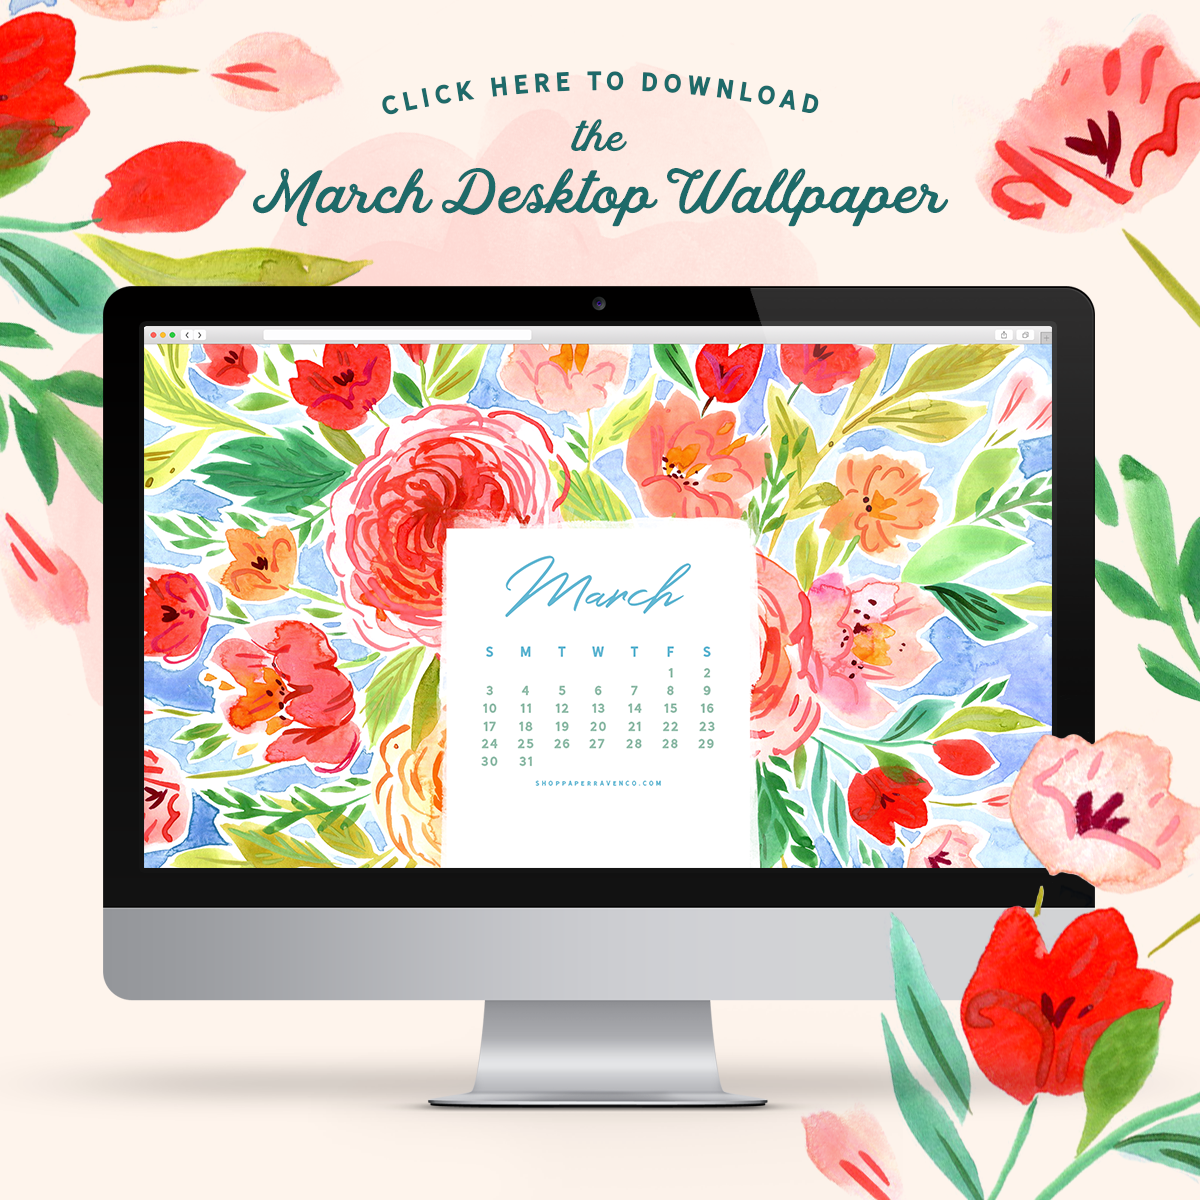 March 2019 Illustrated Desktop Wallpaper by Paper Raven Co.  |  www.ShopPaperRavenCo.com #dressyourtech #desktopwallpaper